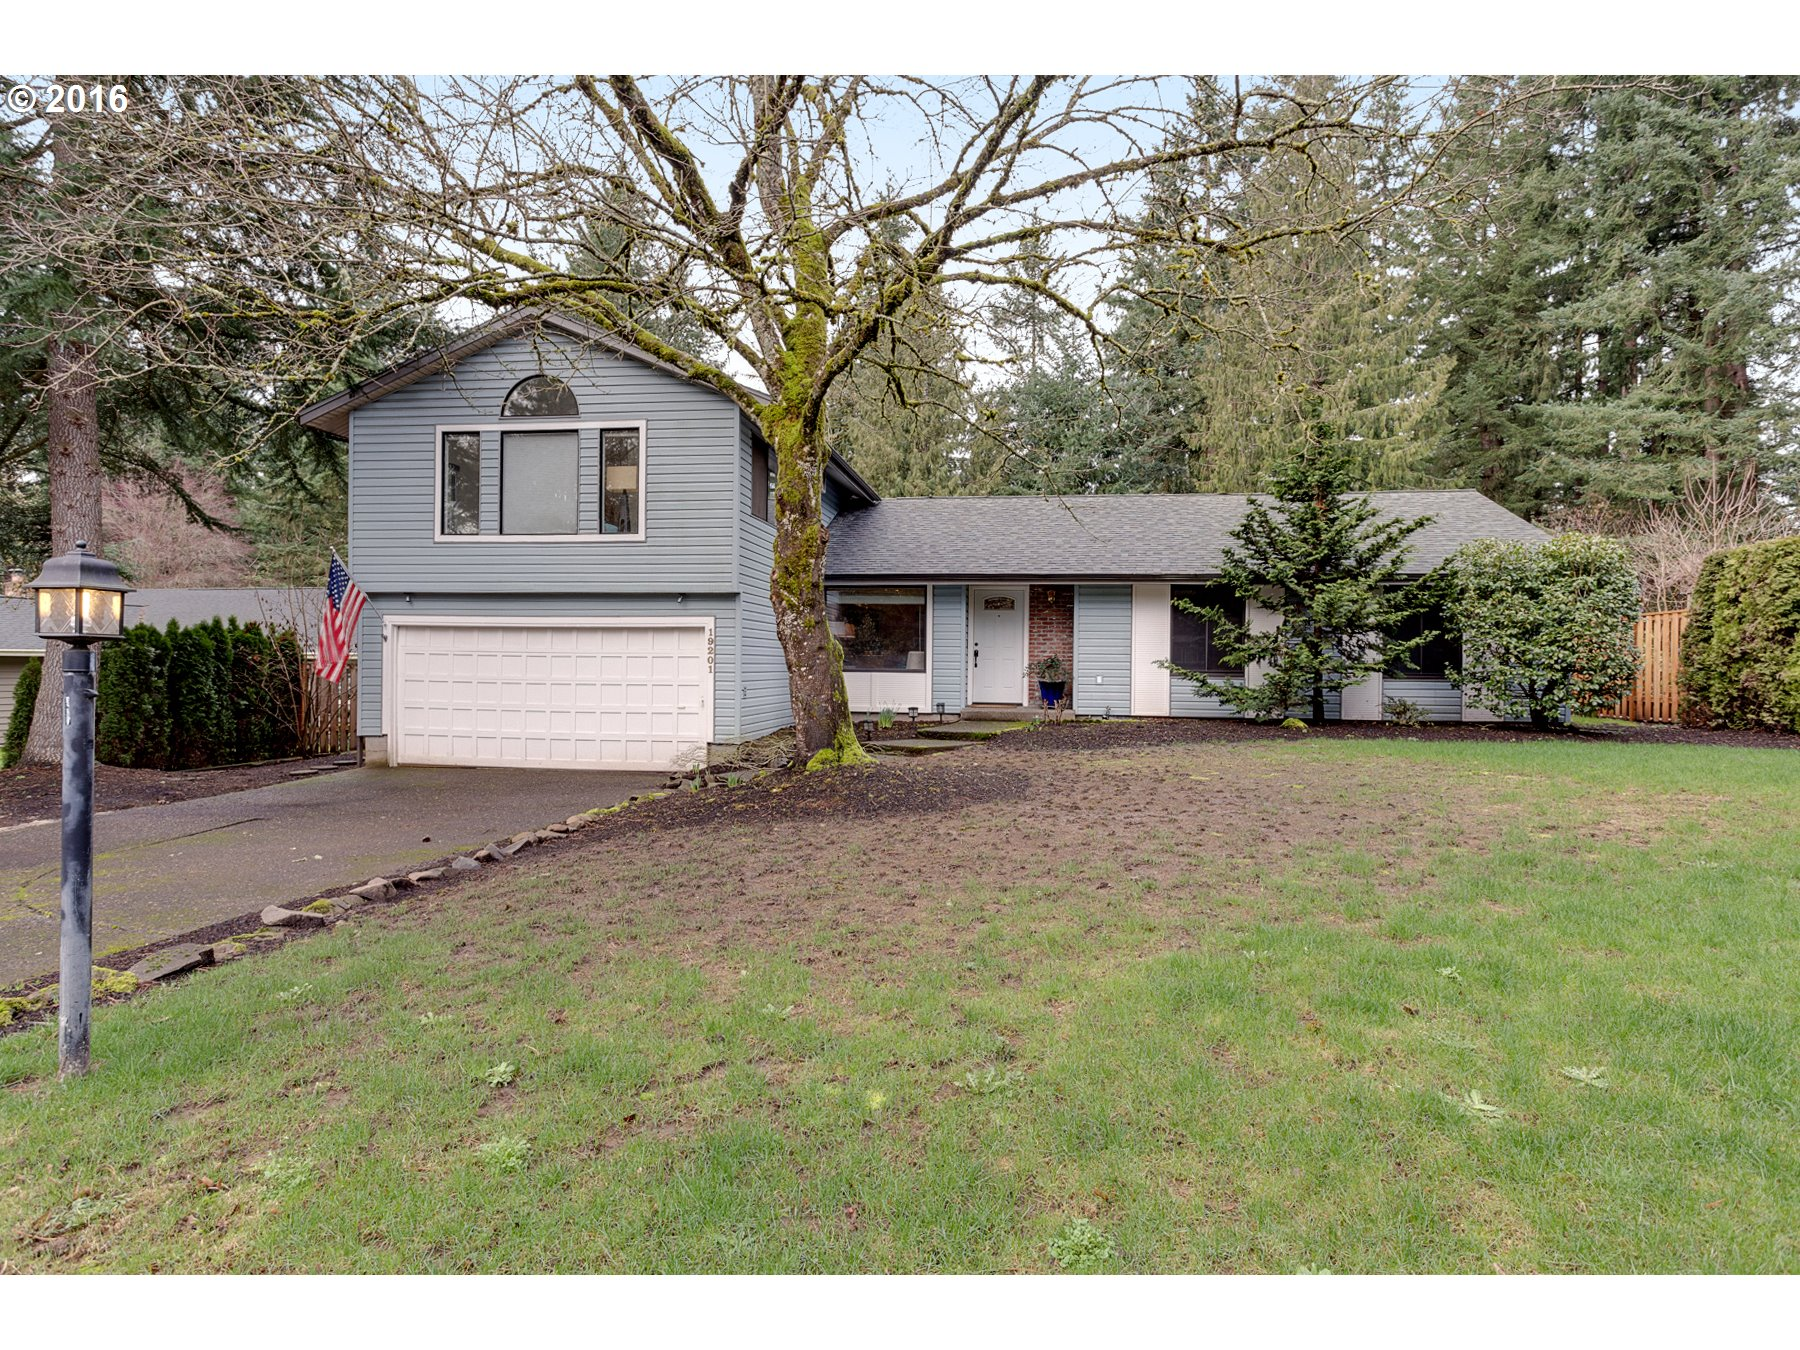 19201 REDWING CT, Lake Oswego OR 97035